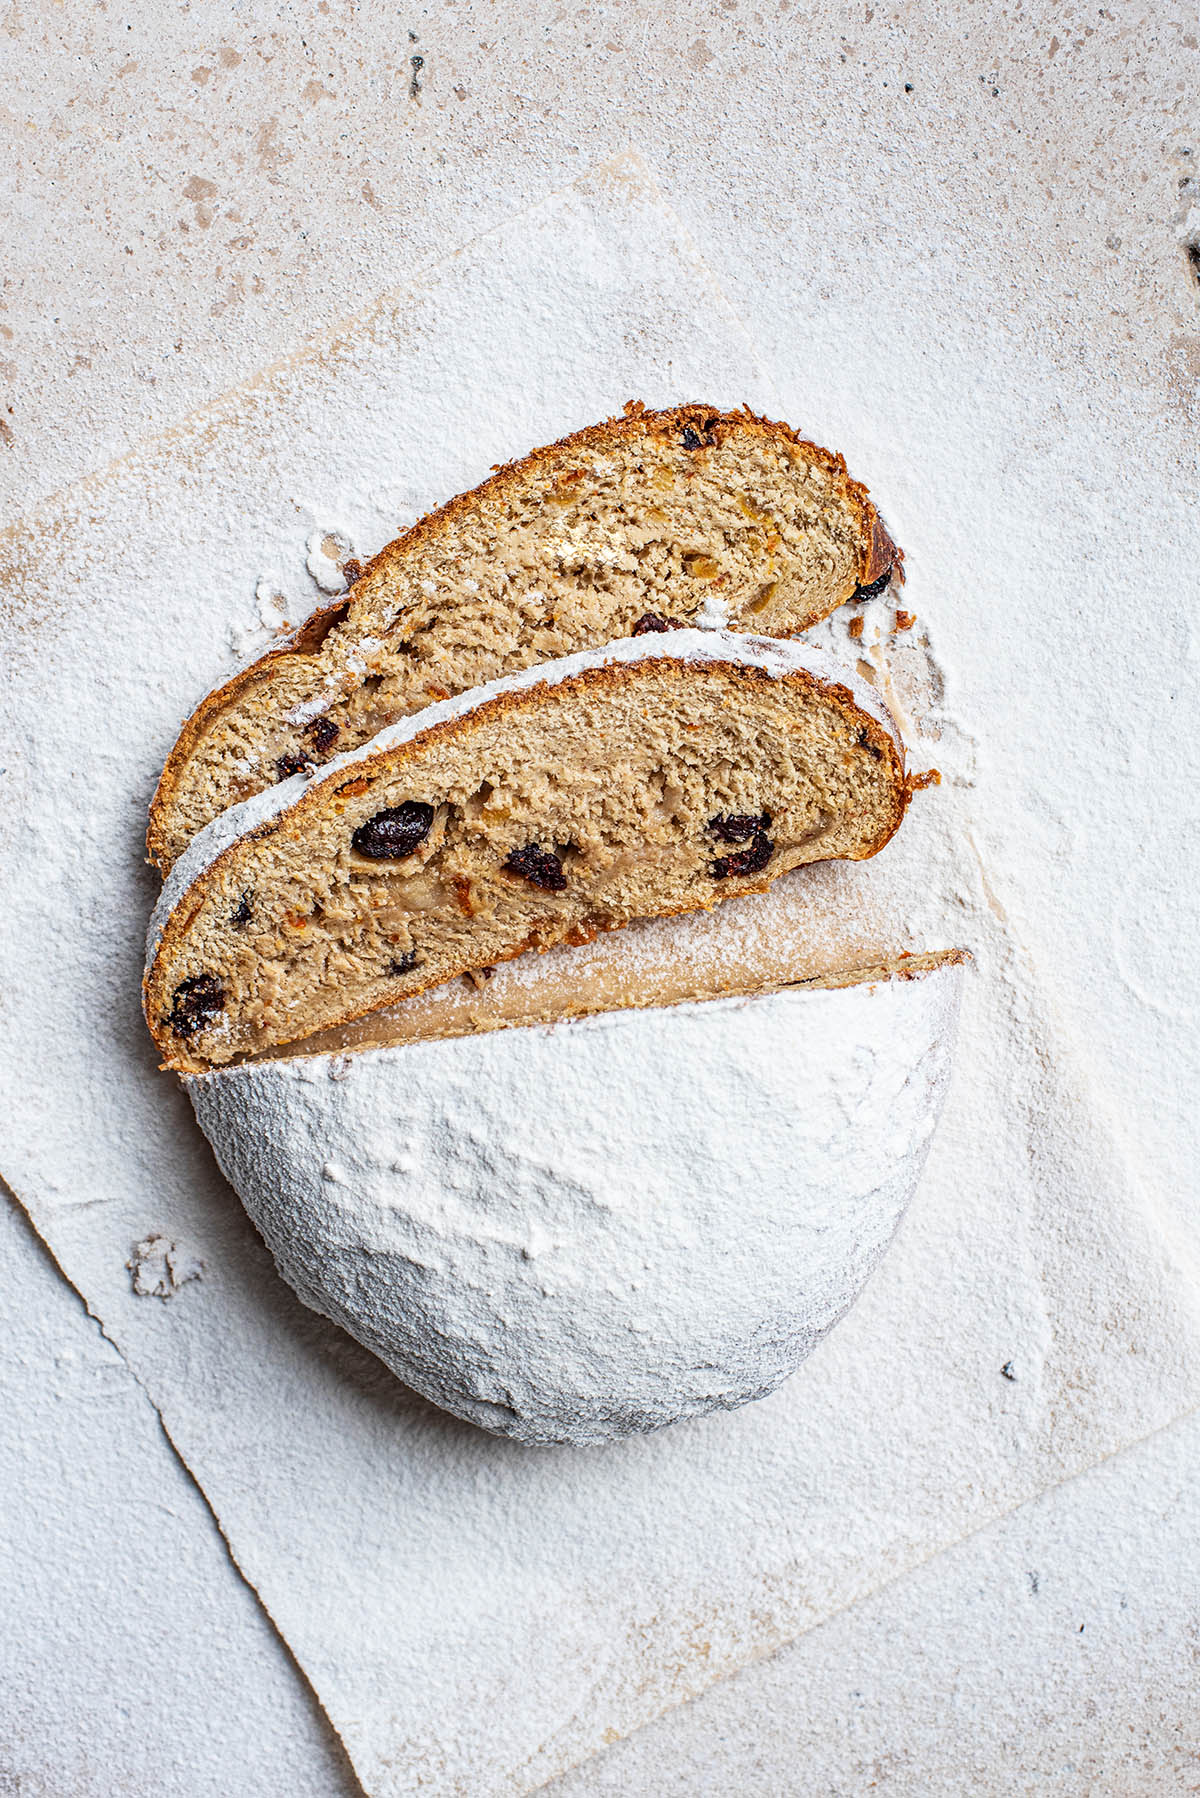 Icing sugar coated stollen with two slices cut.